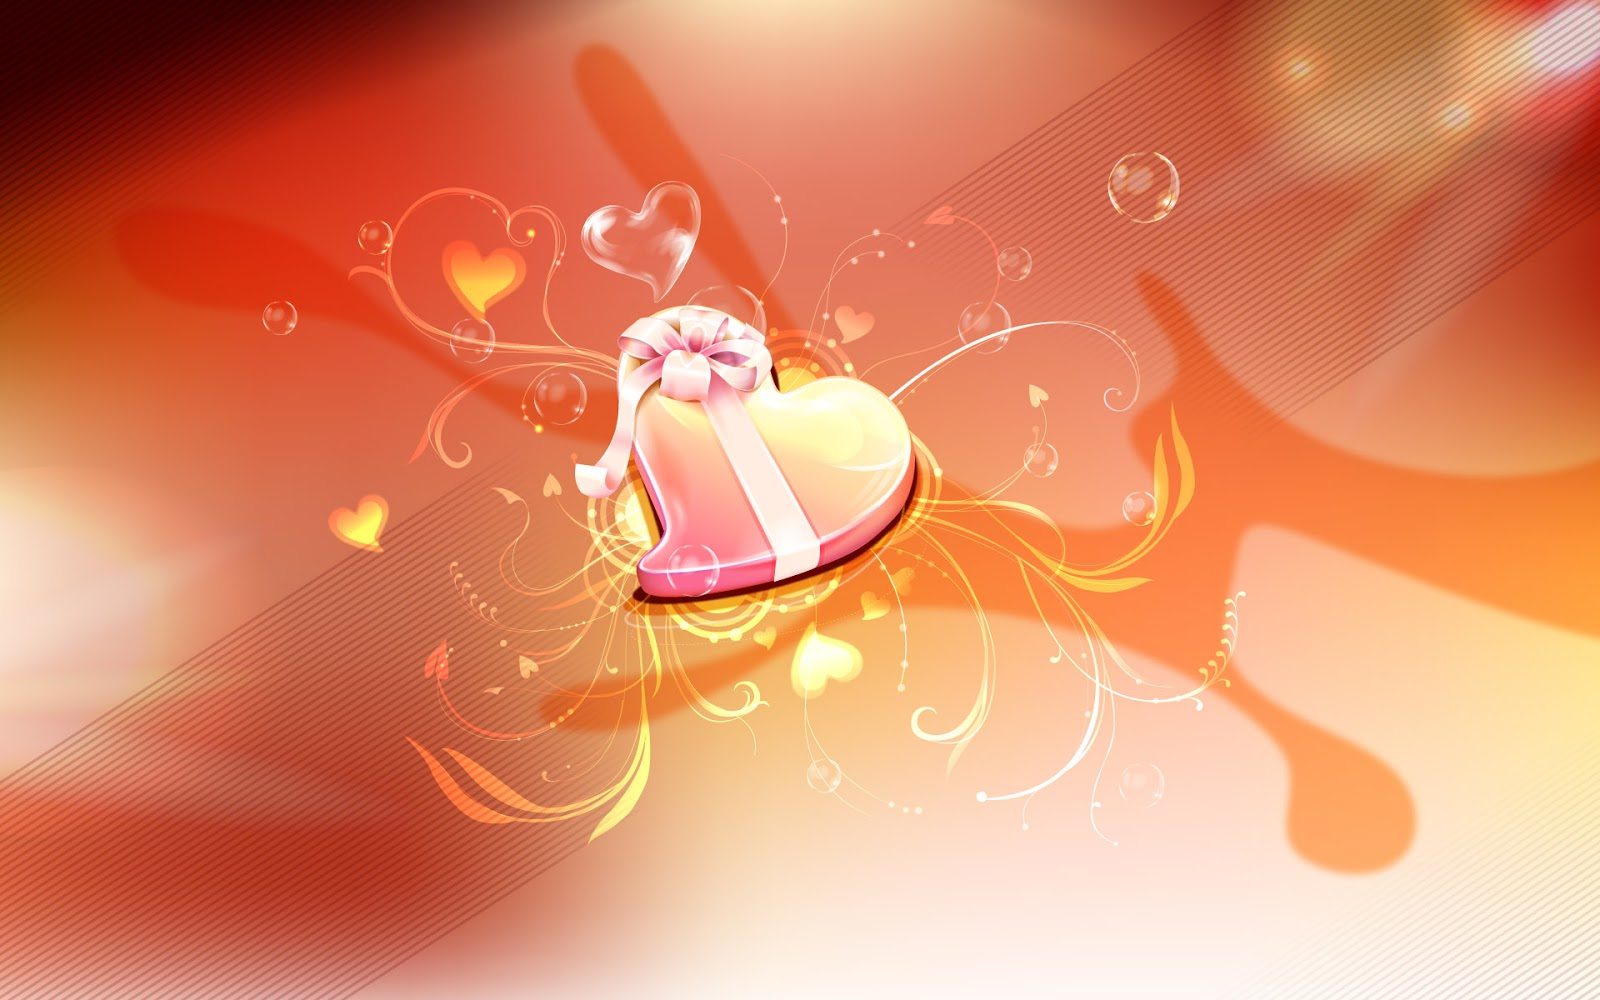 free valentines day wallpapers download free valentines day wallpapers fvalentines day wallpapers and screensavers